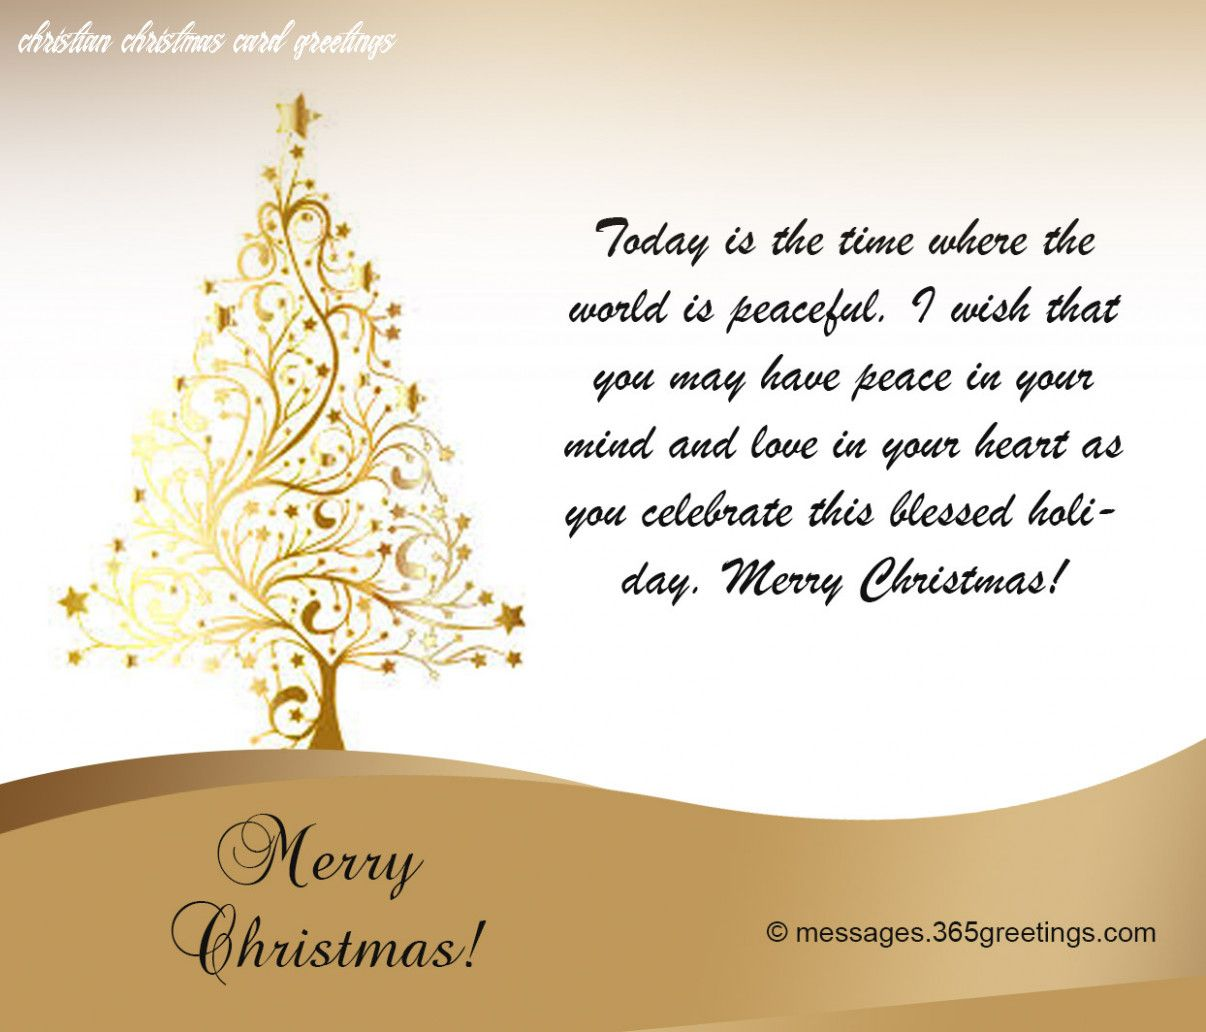 Christmas 2020 Christian 10 Christian Christmas Card Greetings in 2020 | Christmas card